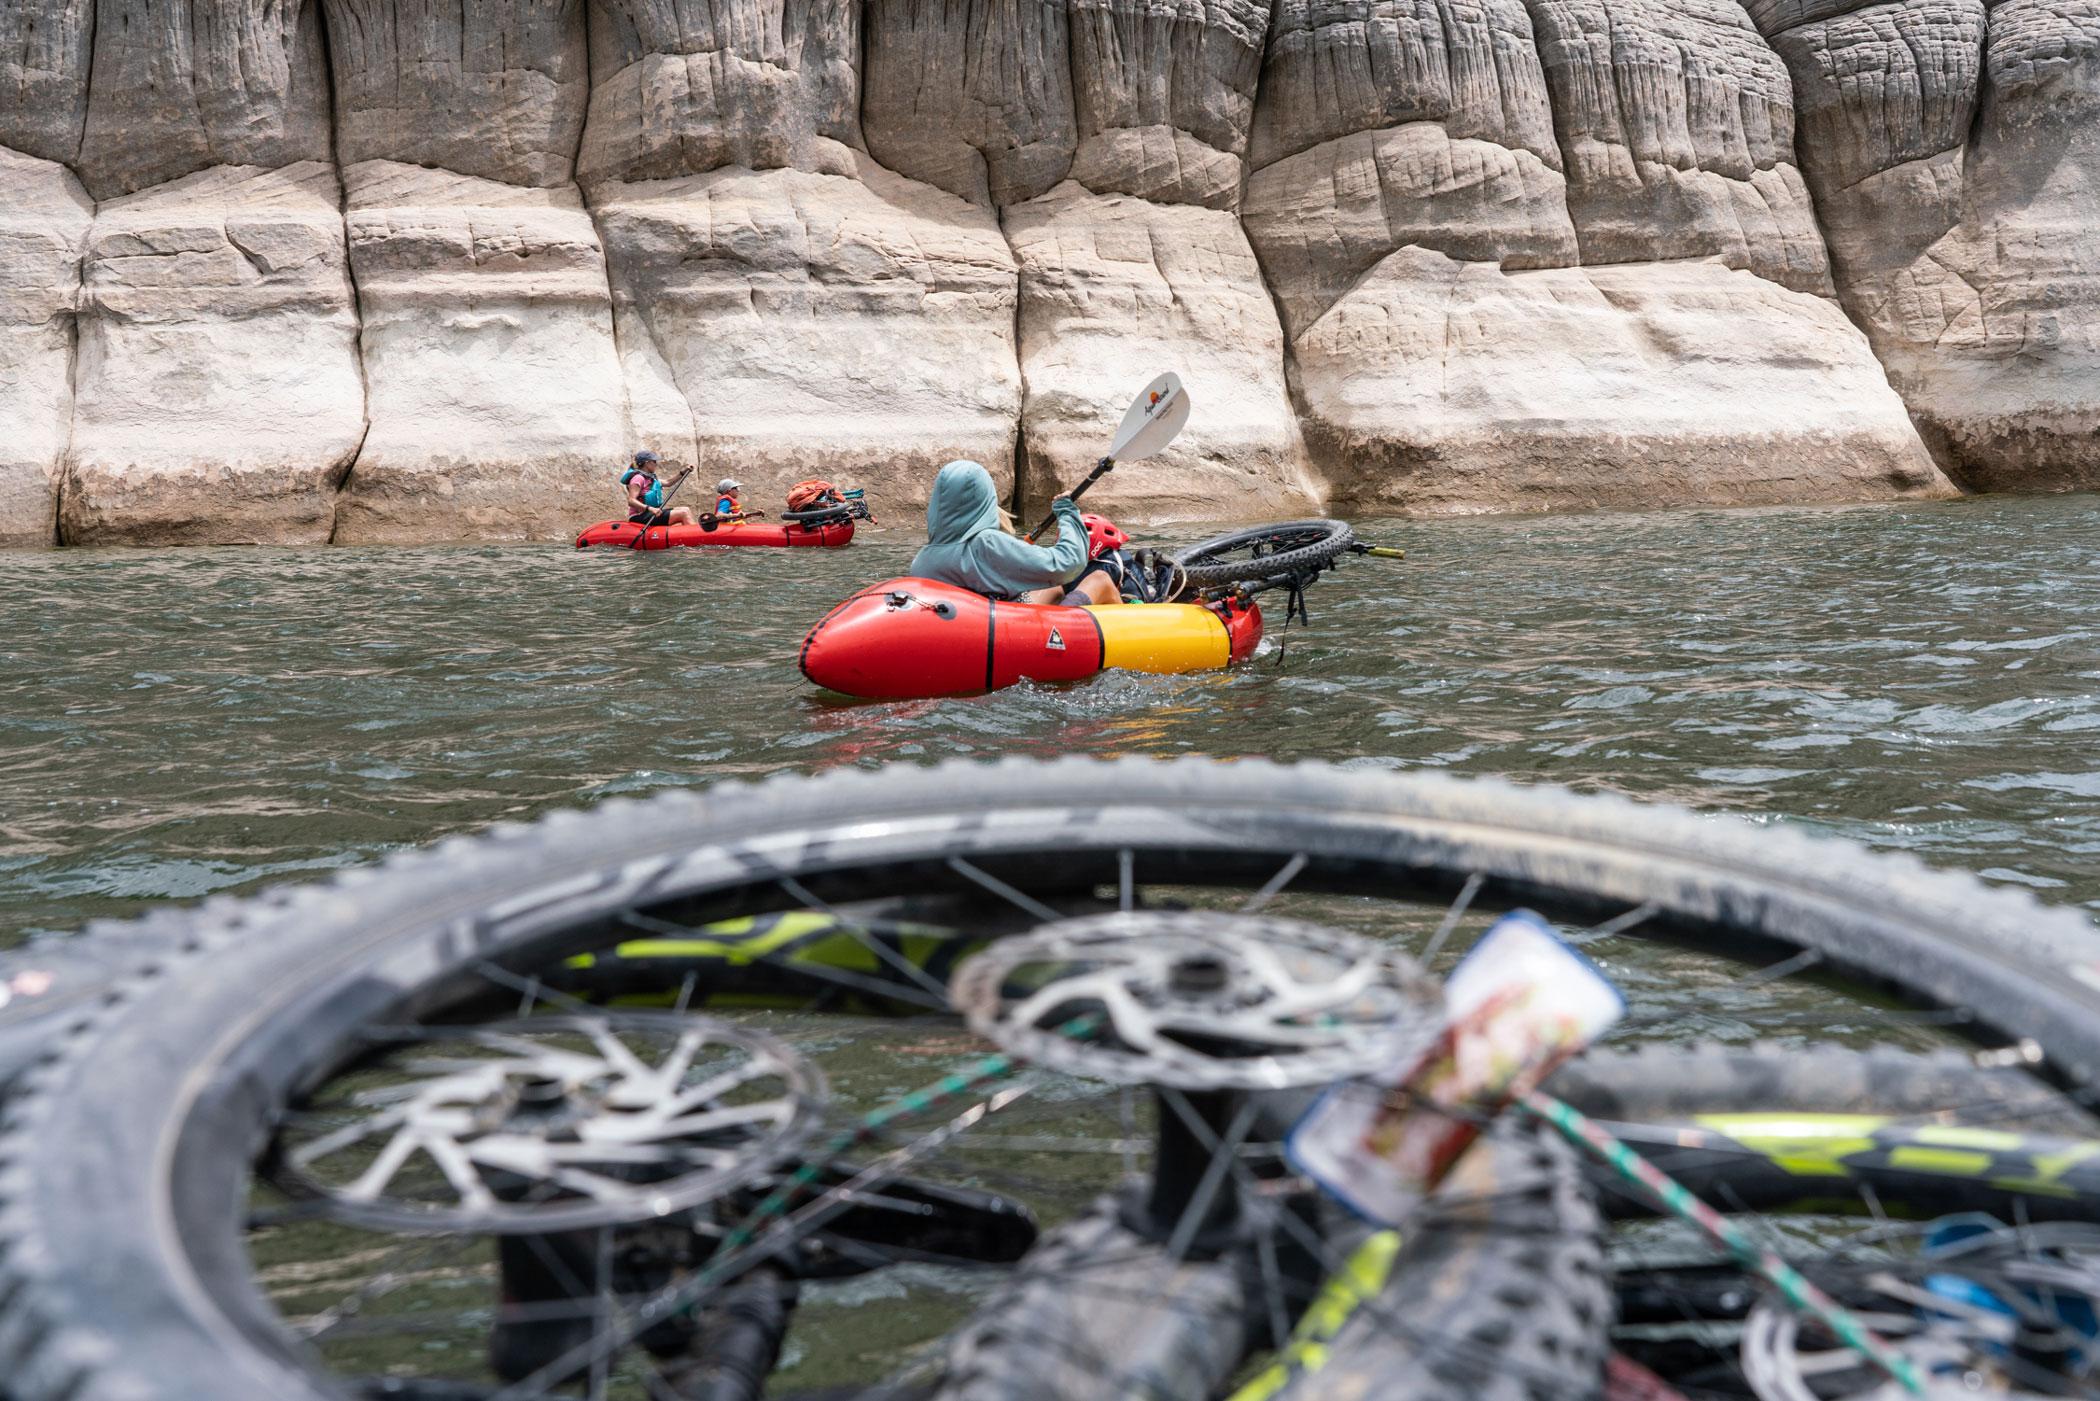 Wally Ferrell, 14, paddles solo on McPhee Reservoir, while Kari Bonardchuk and her son, Sam, 9, paddle a two-person packraft.